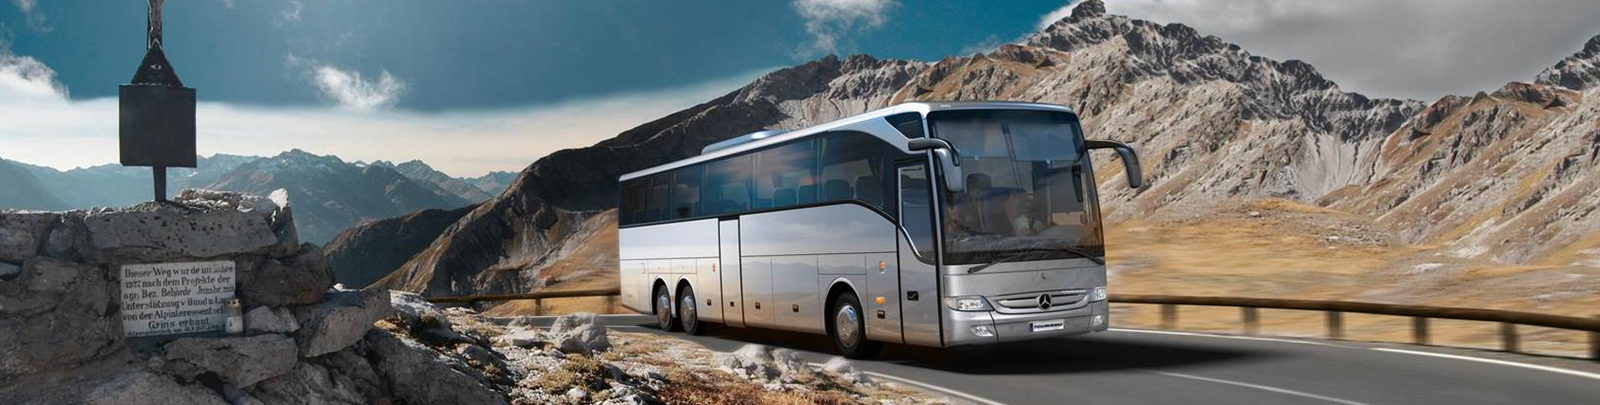 bus_tourismo_header